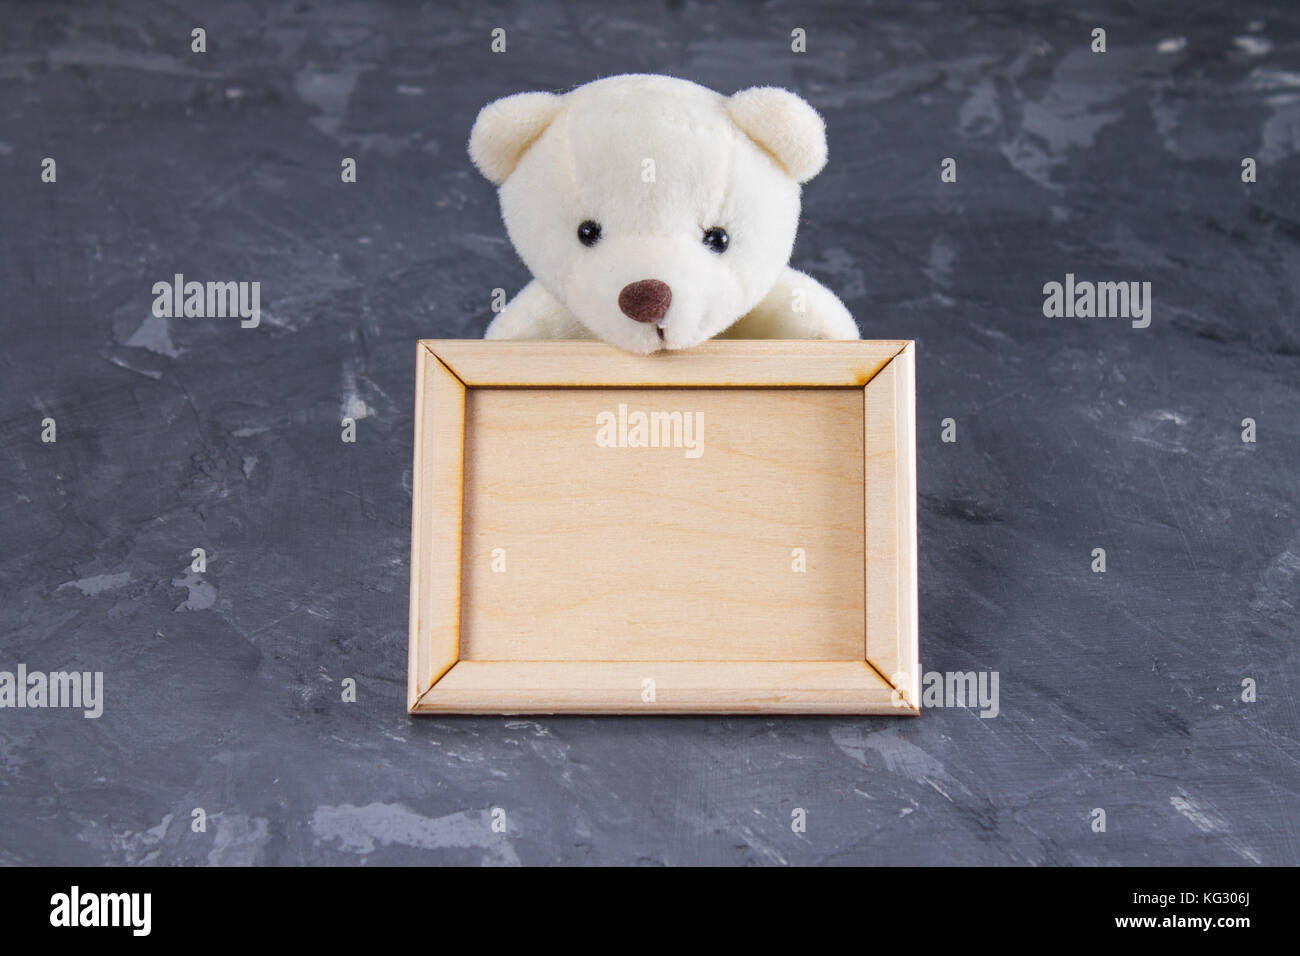 White Teddy Bear Holding Empty Wooden Frame Gray Background Stock